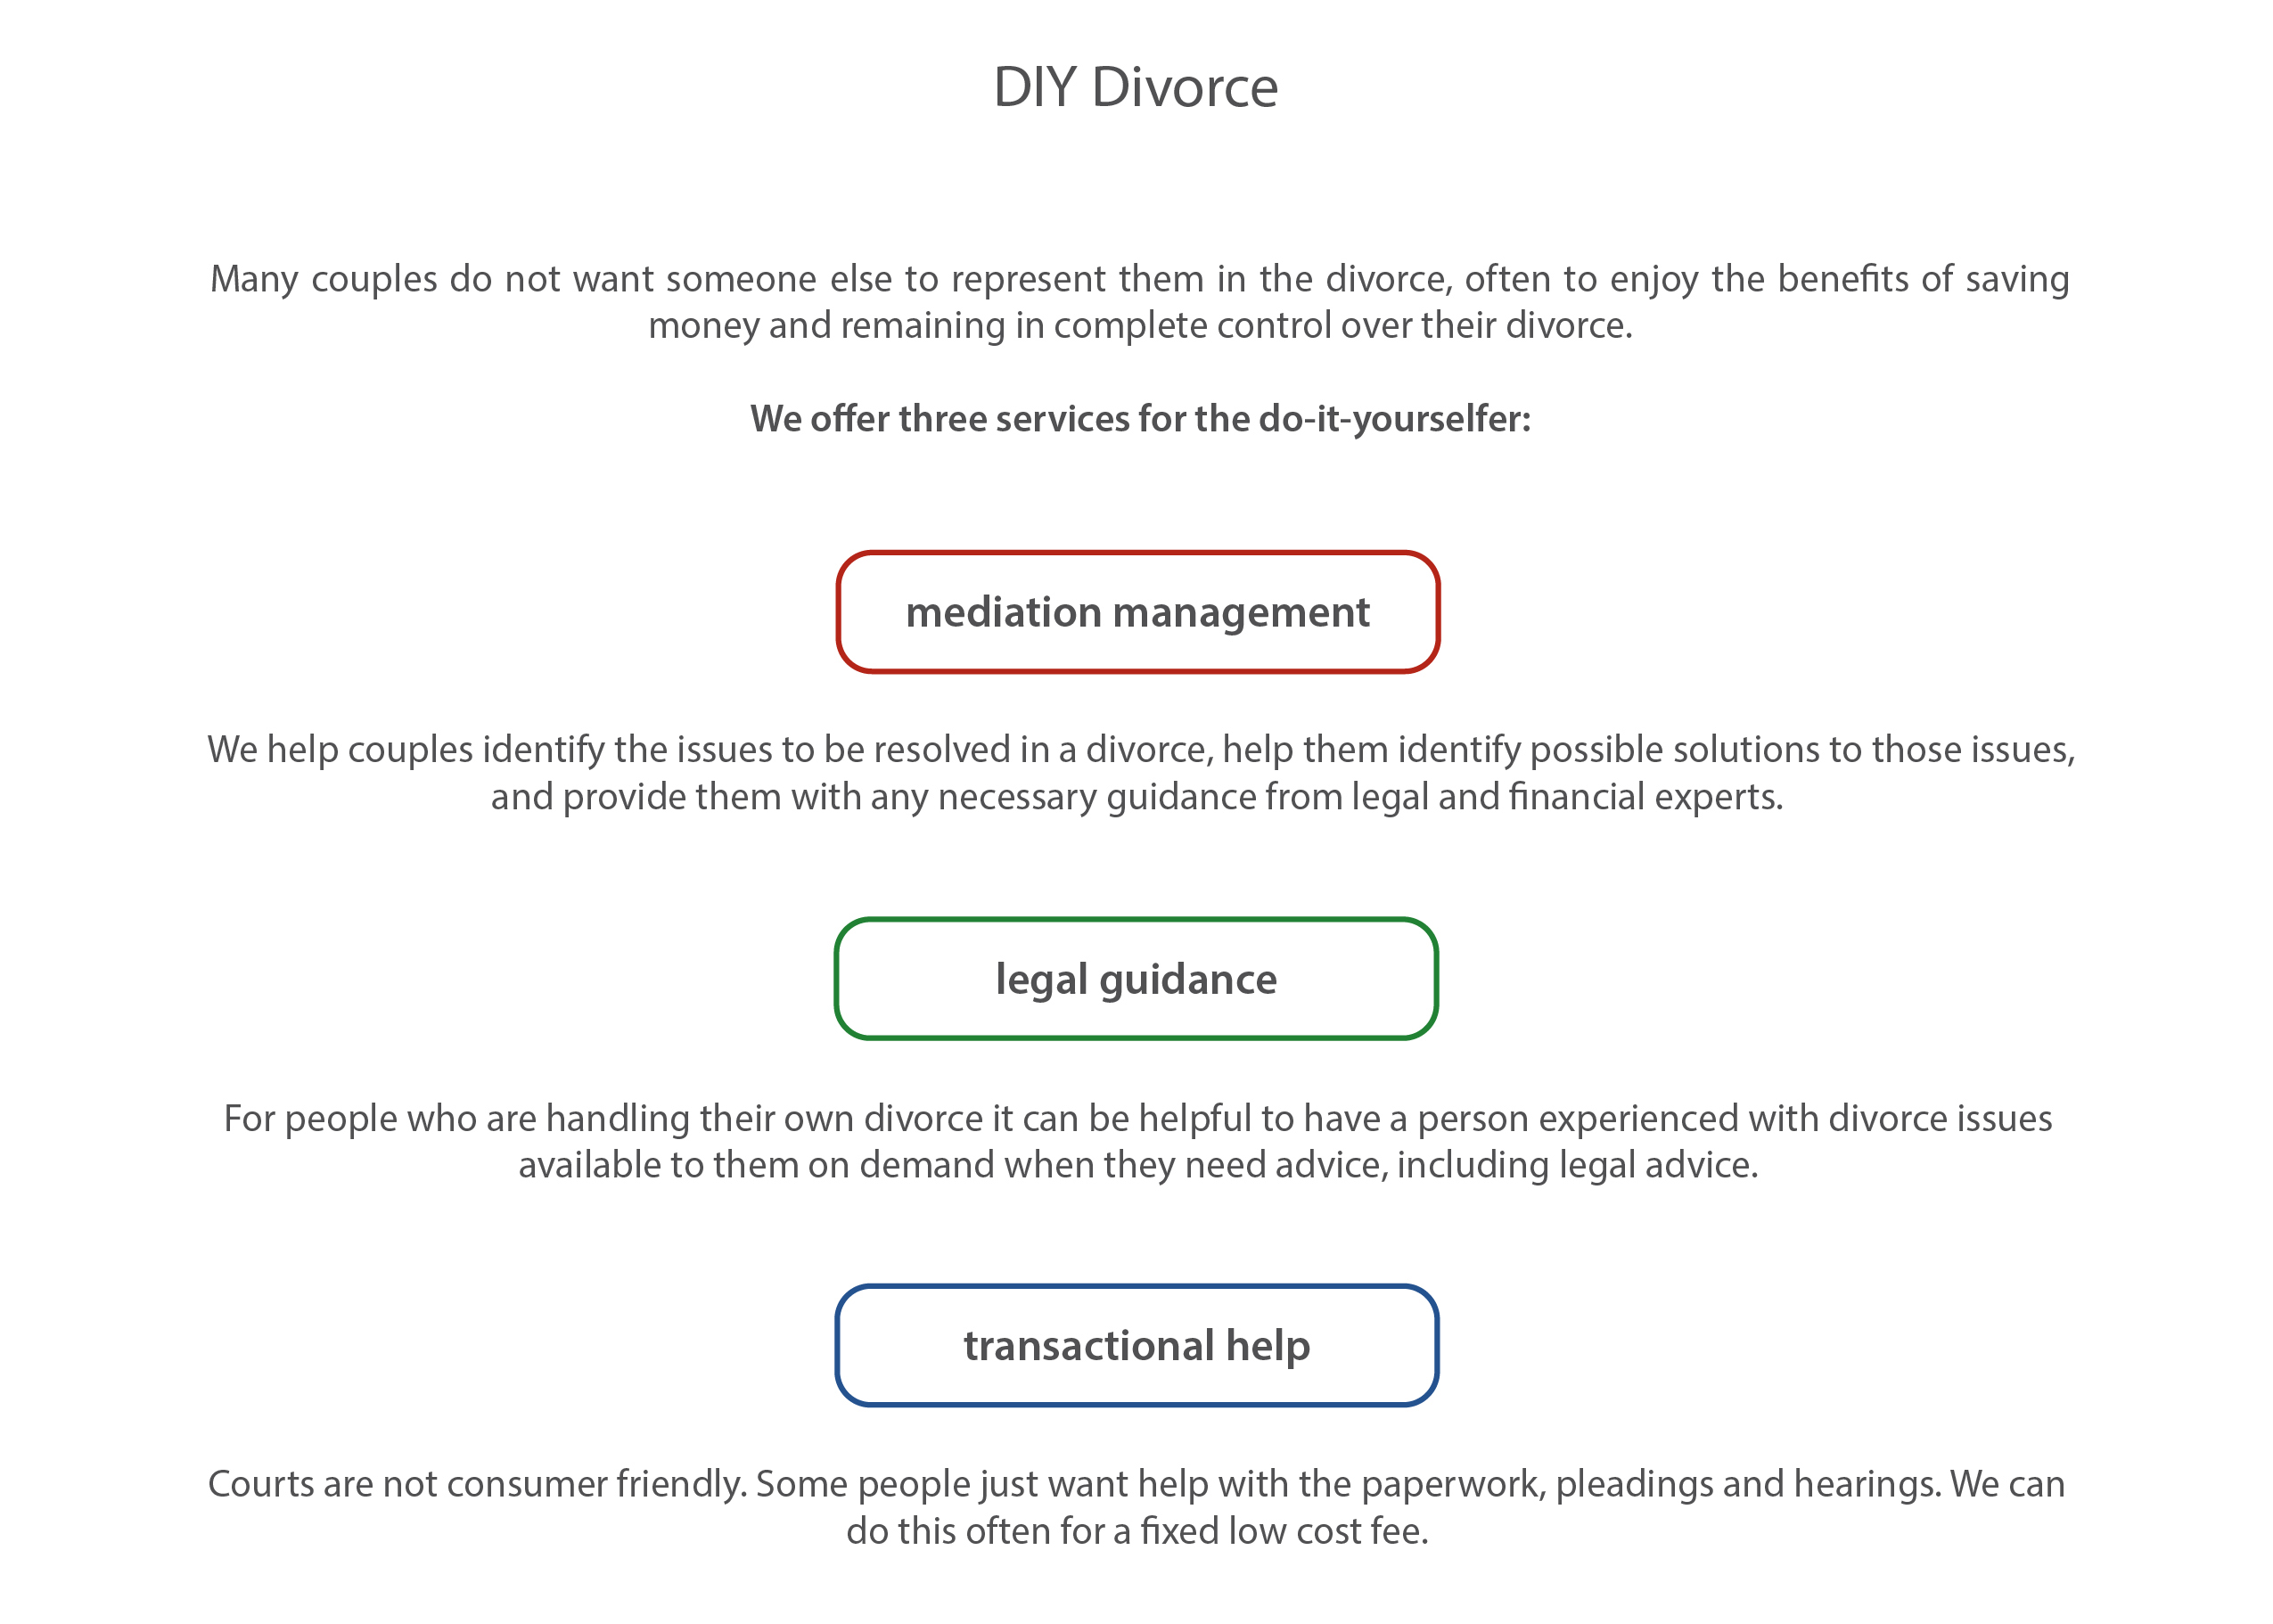 DIY Divorce - Help with legal paperwork